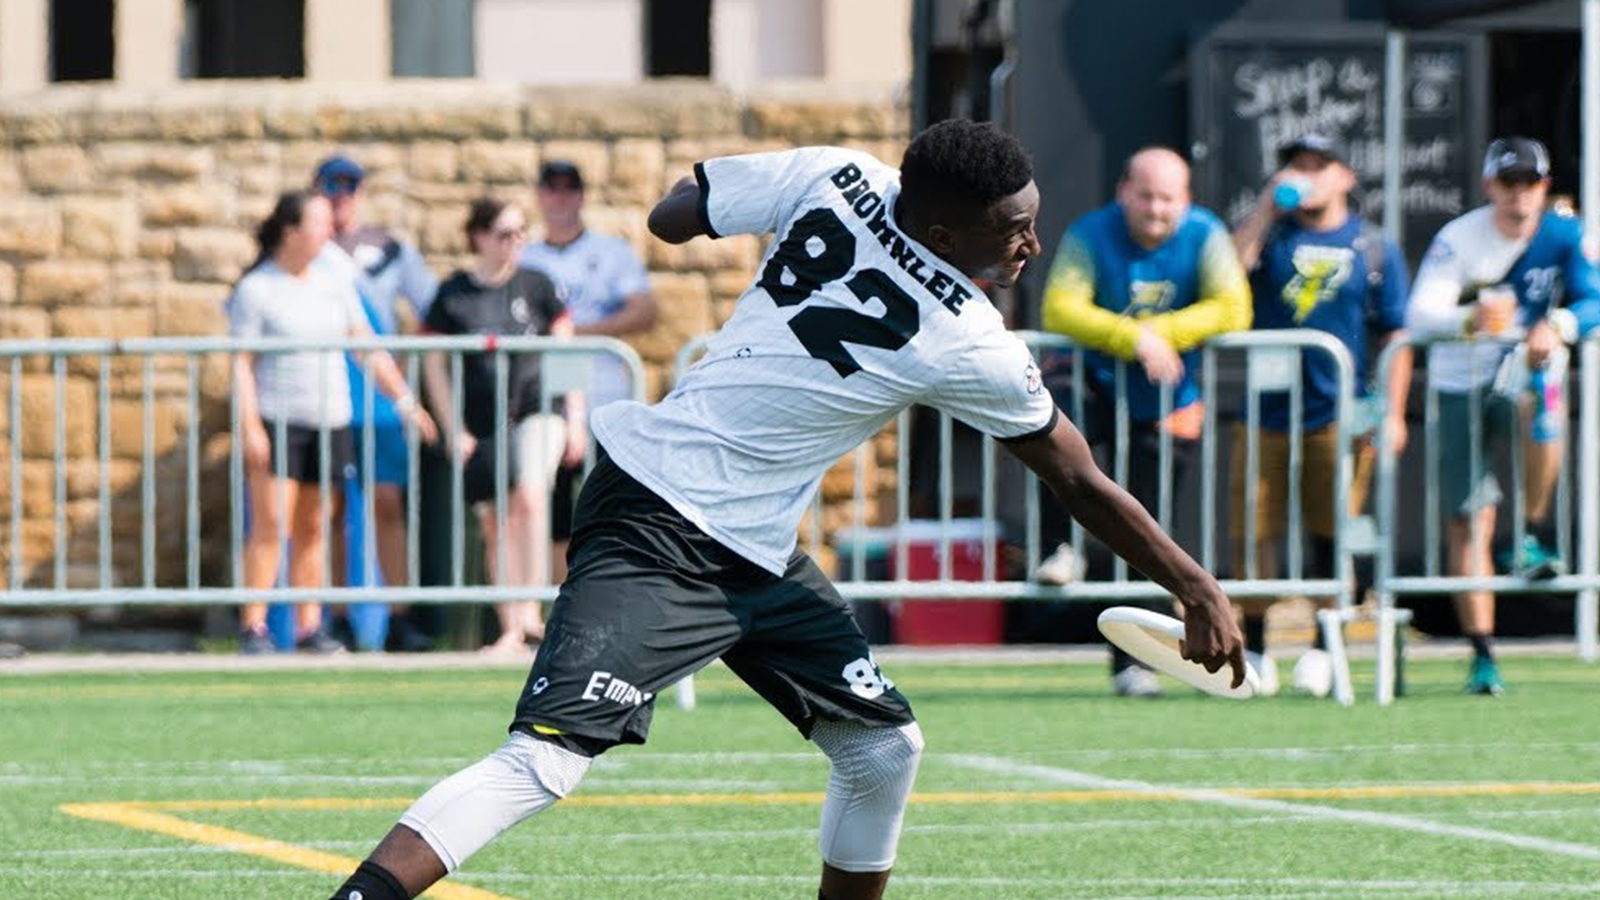 Marques Brownlee playing ultimate frisbee